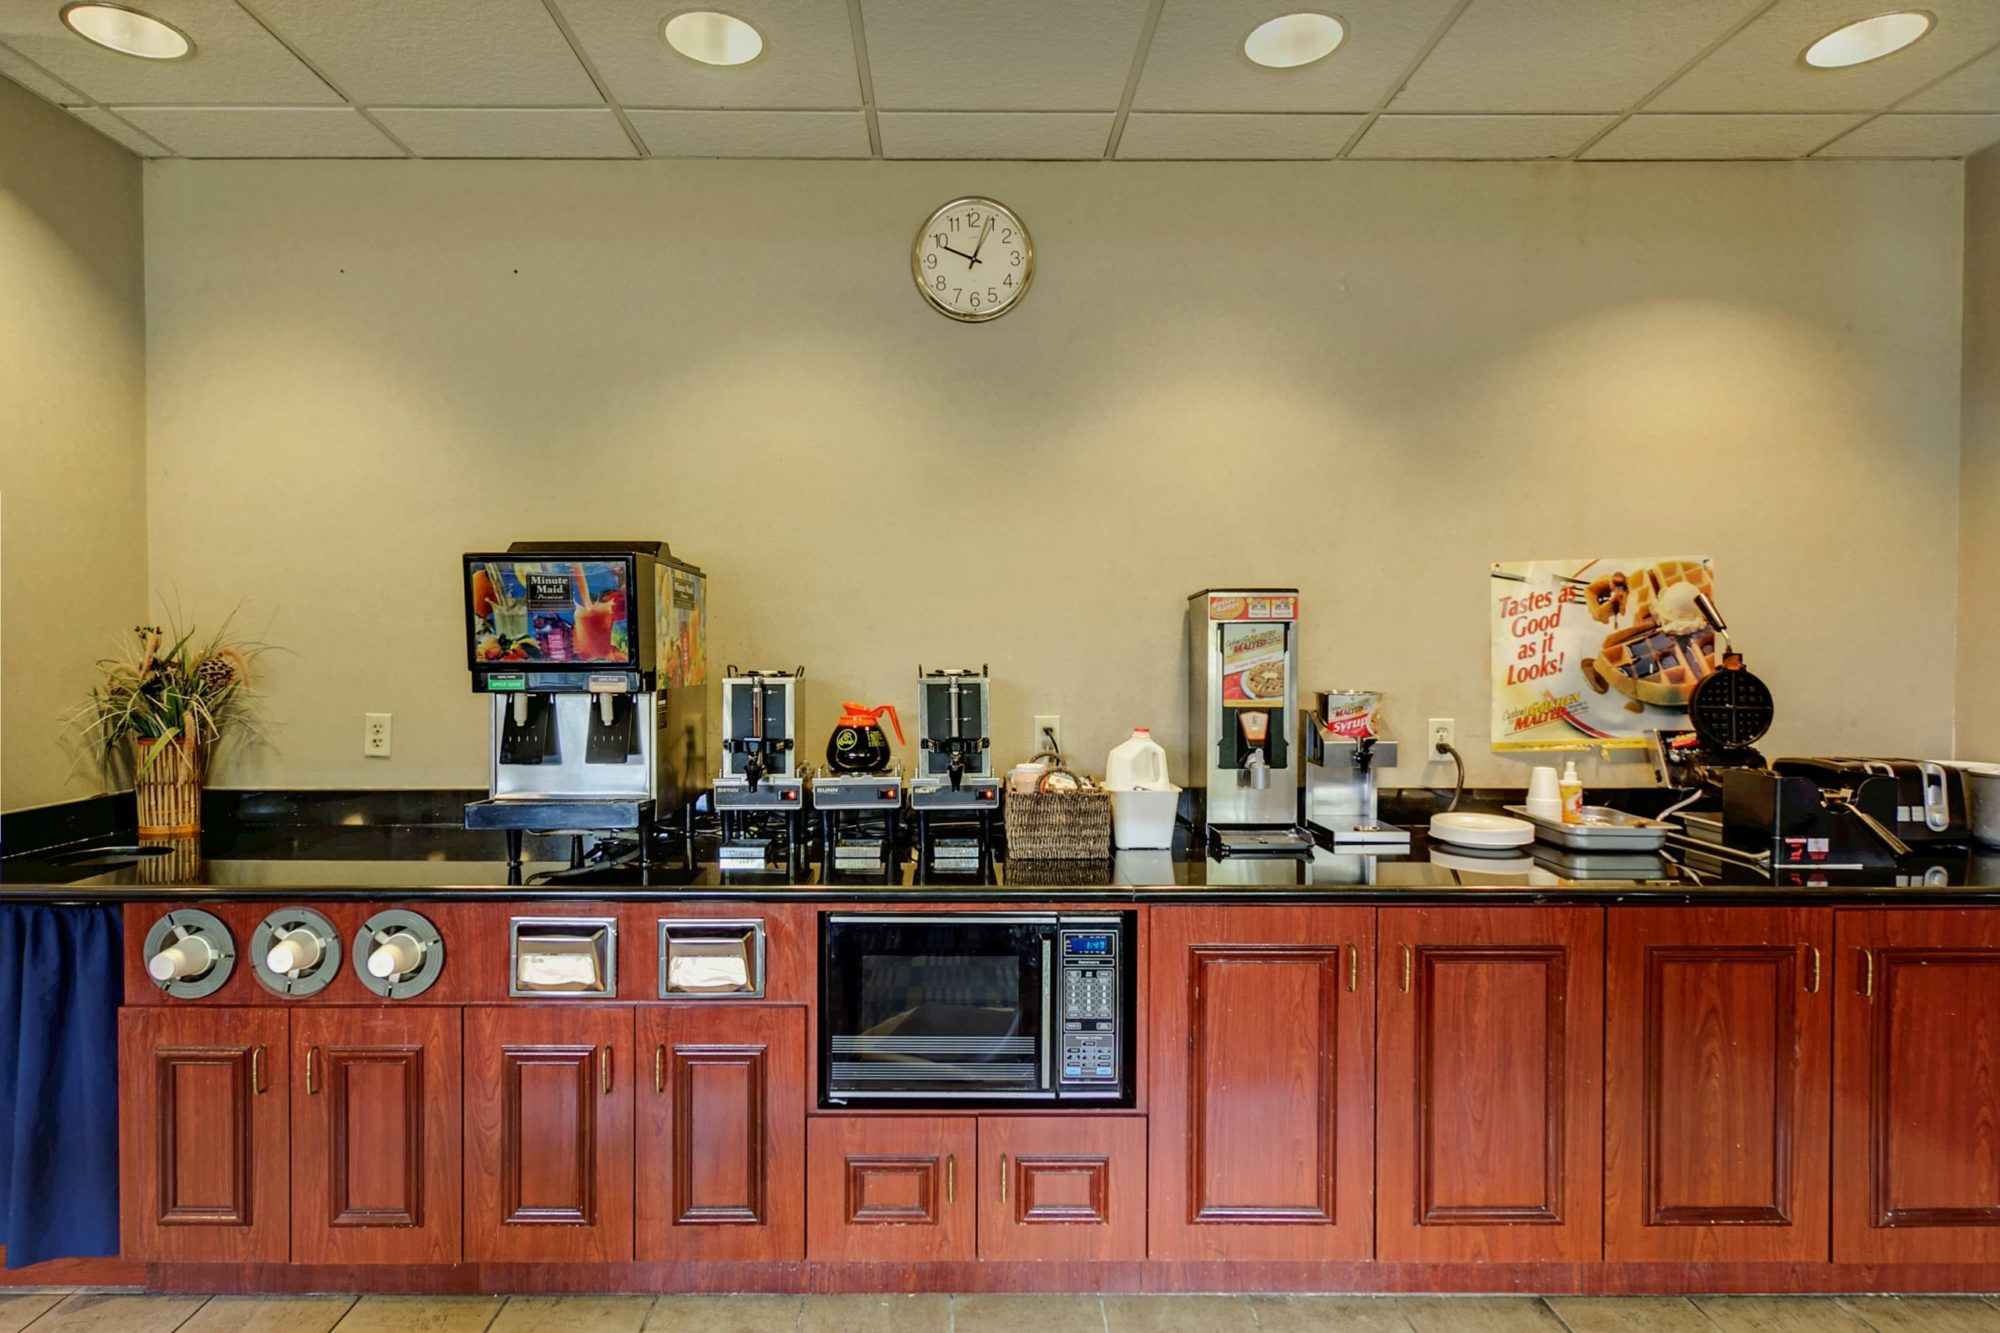 Breakfast Buffet display with coffee, juice and waffle machines and toaster